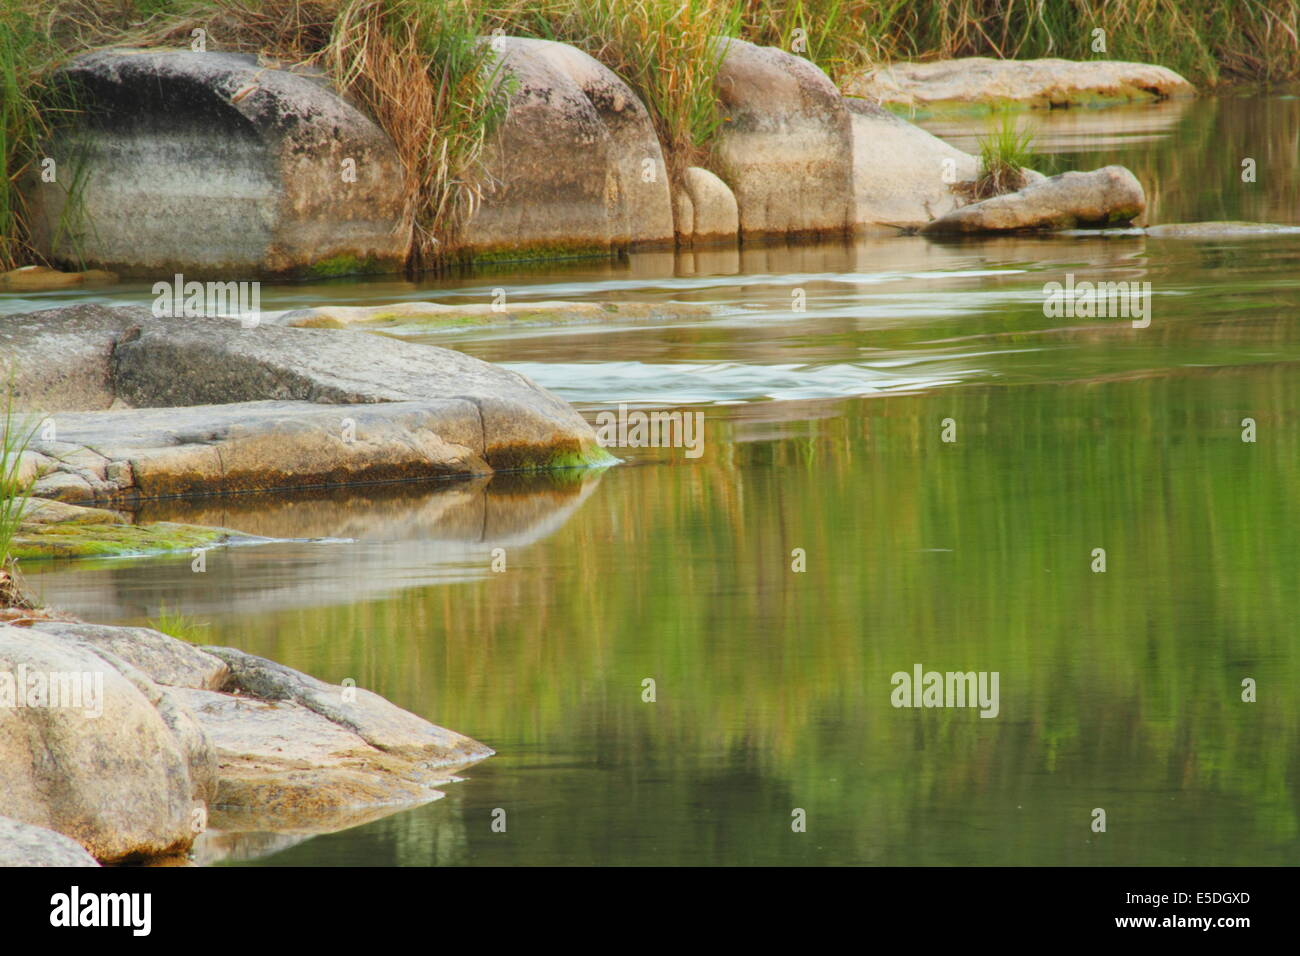 The Llano River, near Junction in the hill country region of Texas. - Stock Image